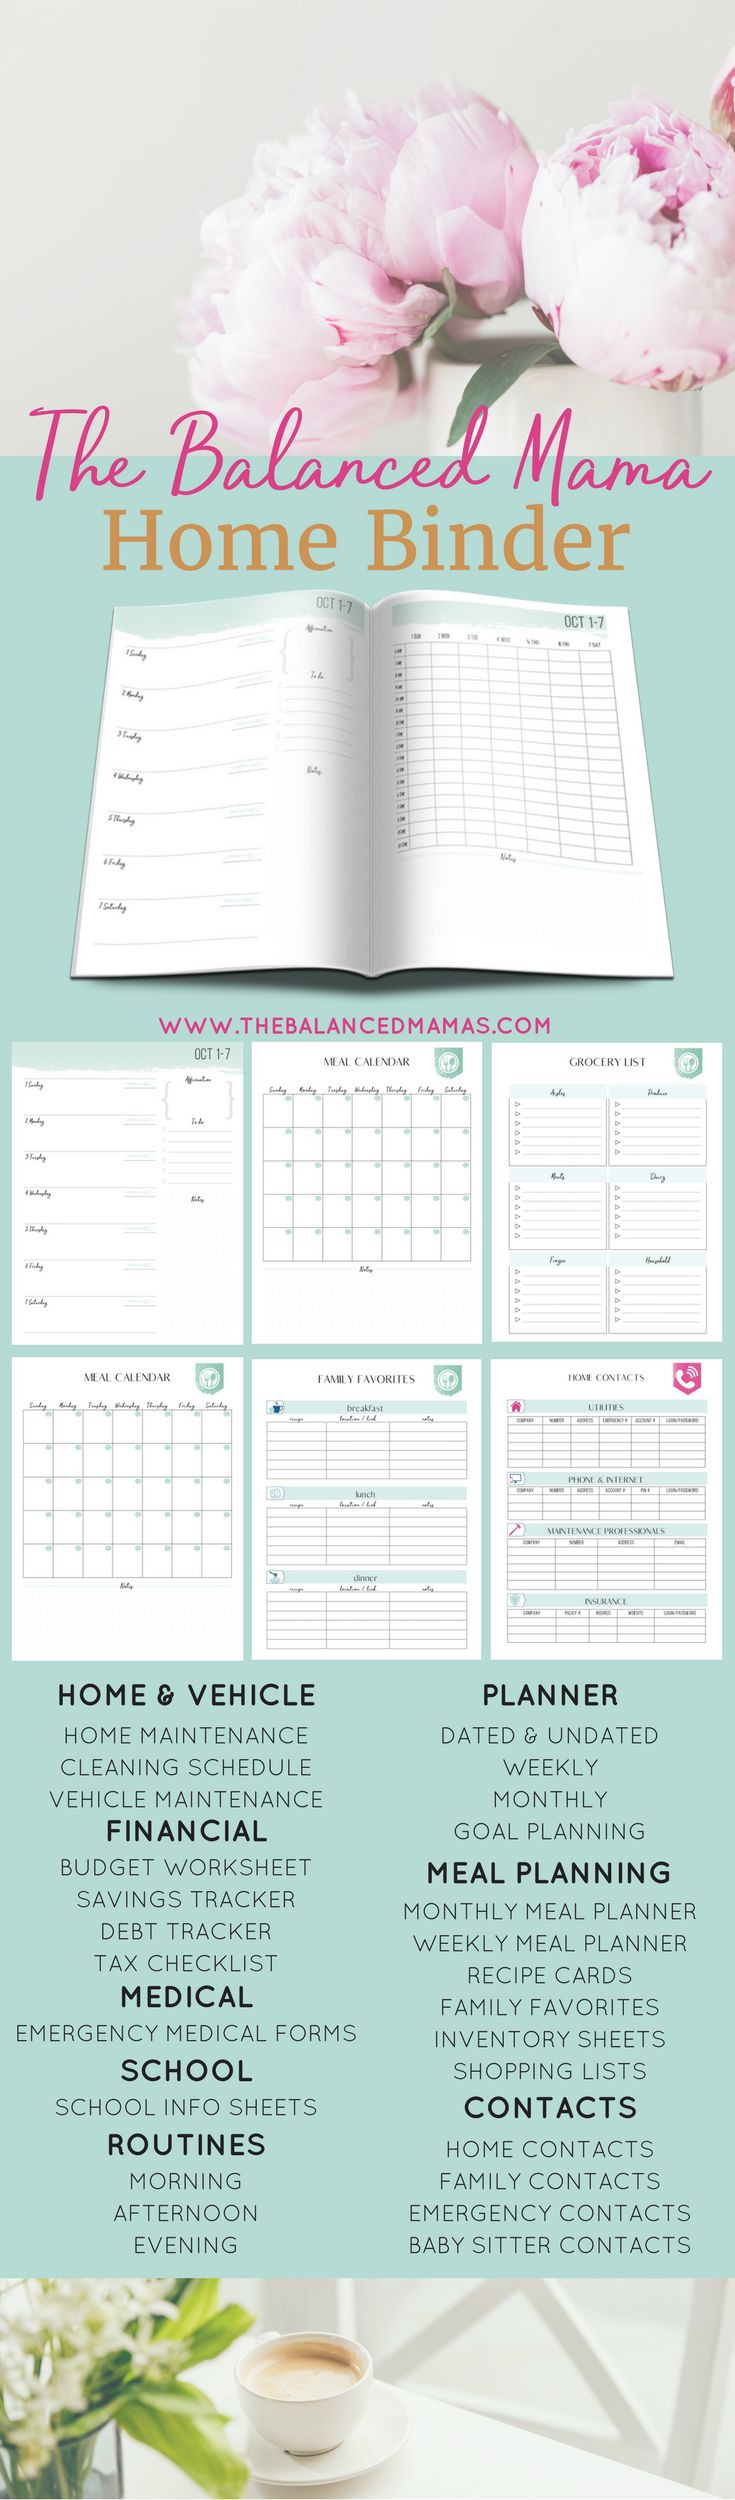 Keeping organized as a mom should be super easy! It will be with this life planner and home binder! Check out this easy to use home management binder to finally keep track of all of those tasks around the home and cars! The home management binder sections include meal planning, household maintenance checklist, vehicle logs, cleaning routines, routine planner, budgeting and so much more. The planner printables include weekly and hourly by the week pages. You also get monthly planning pages…